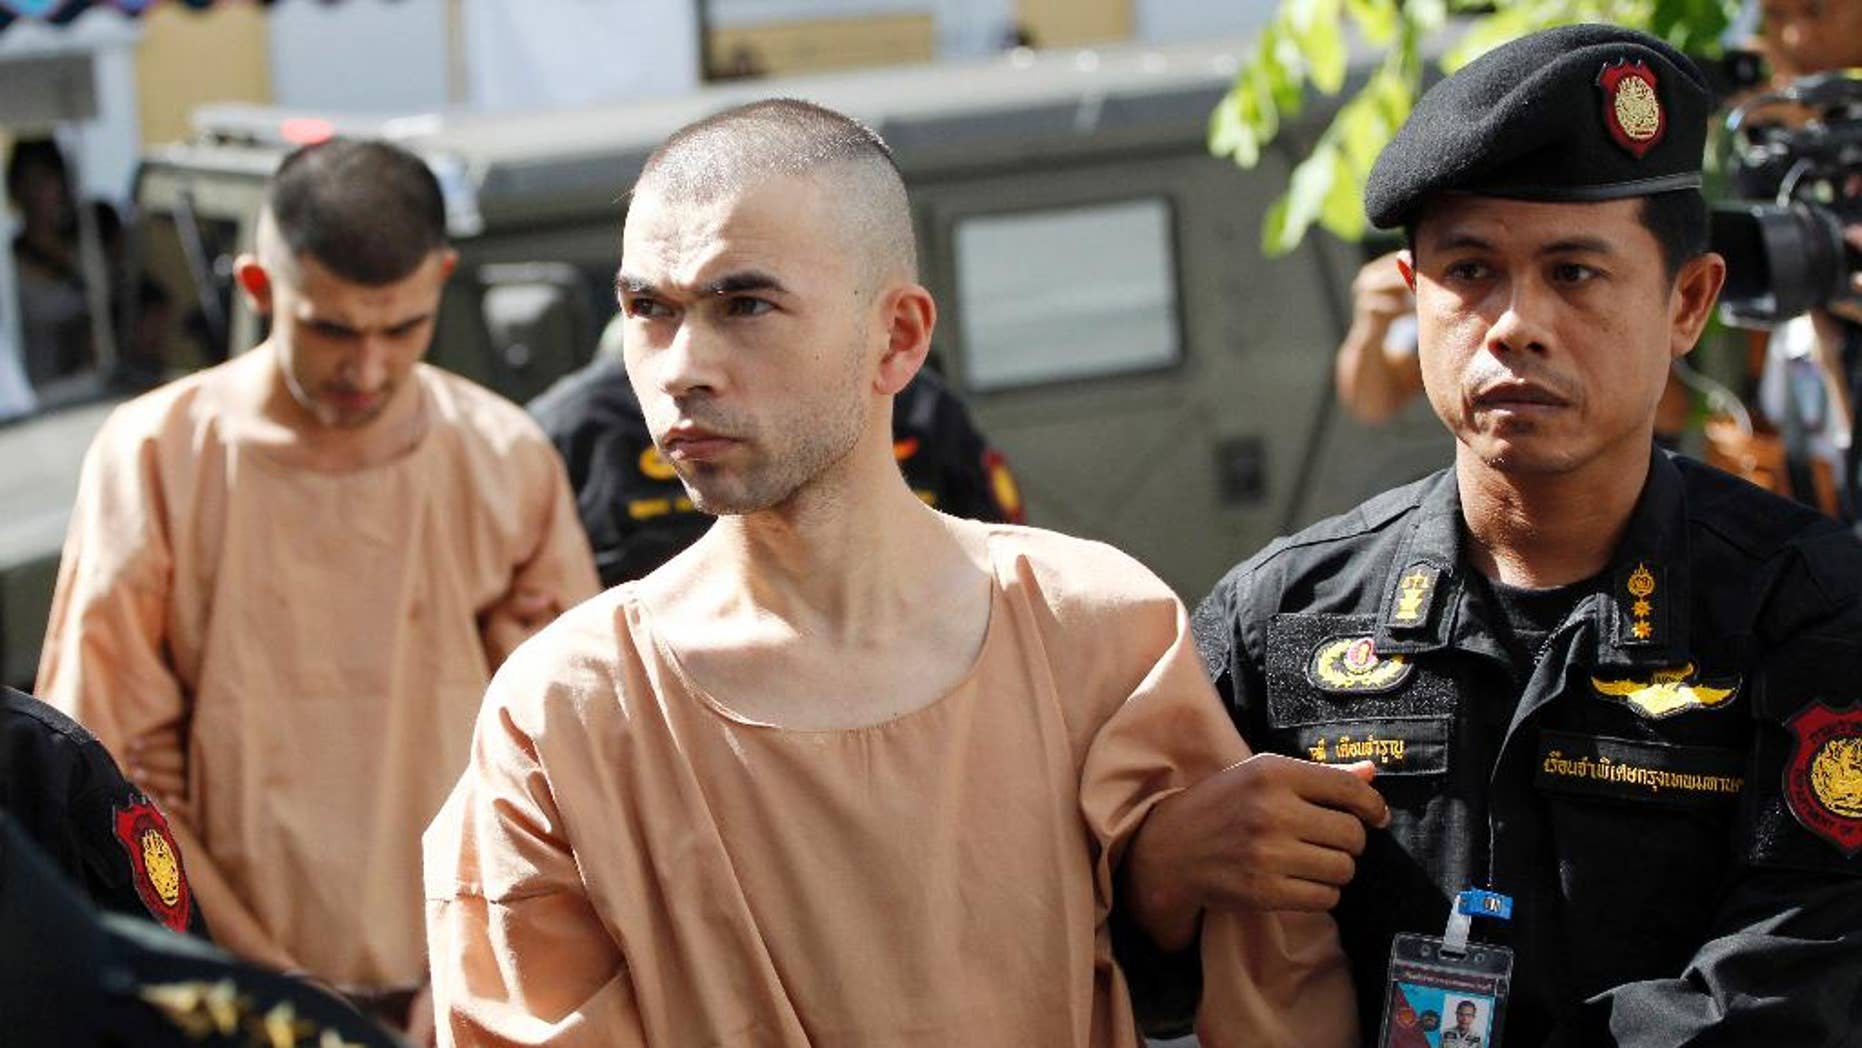 FILE - In this Nov. 24, 2015 file photo, police officers escort suspects in the Aug. 17 blast at Erawan Shrine, Bilal Mohammad, front, and Mieraili Yusufu, rear, as they arrive at a military court in Bangkok, Thailand. Testimony begun Tuesday, Nov. 15, 2016 in the trial of two men accused of the deadly 2015 bombing at a Bangkok landmark after a dispute over the defendants' translators. (AP Photo/Sakchai Lalit, File)